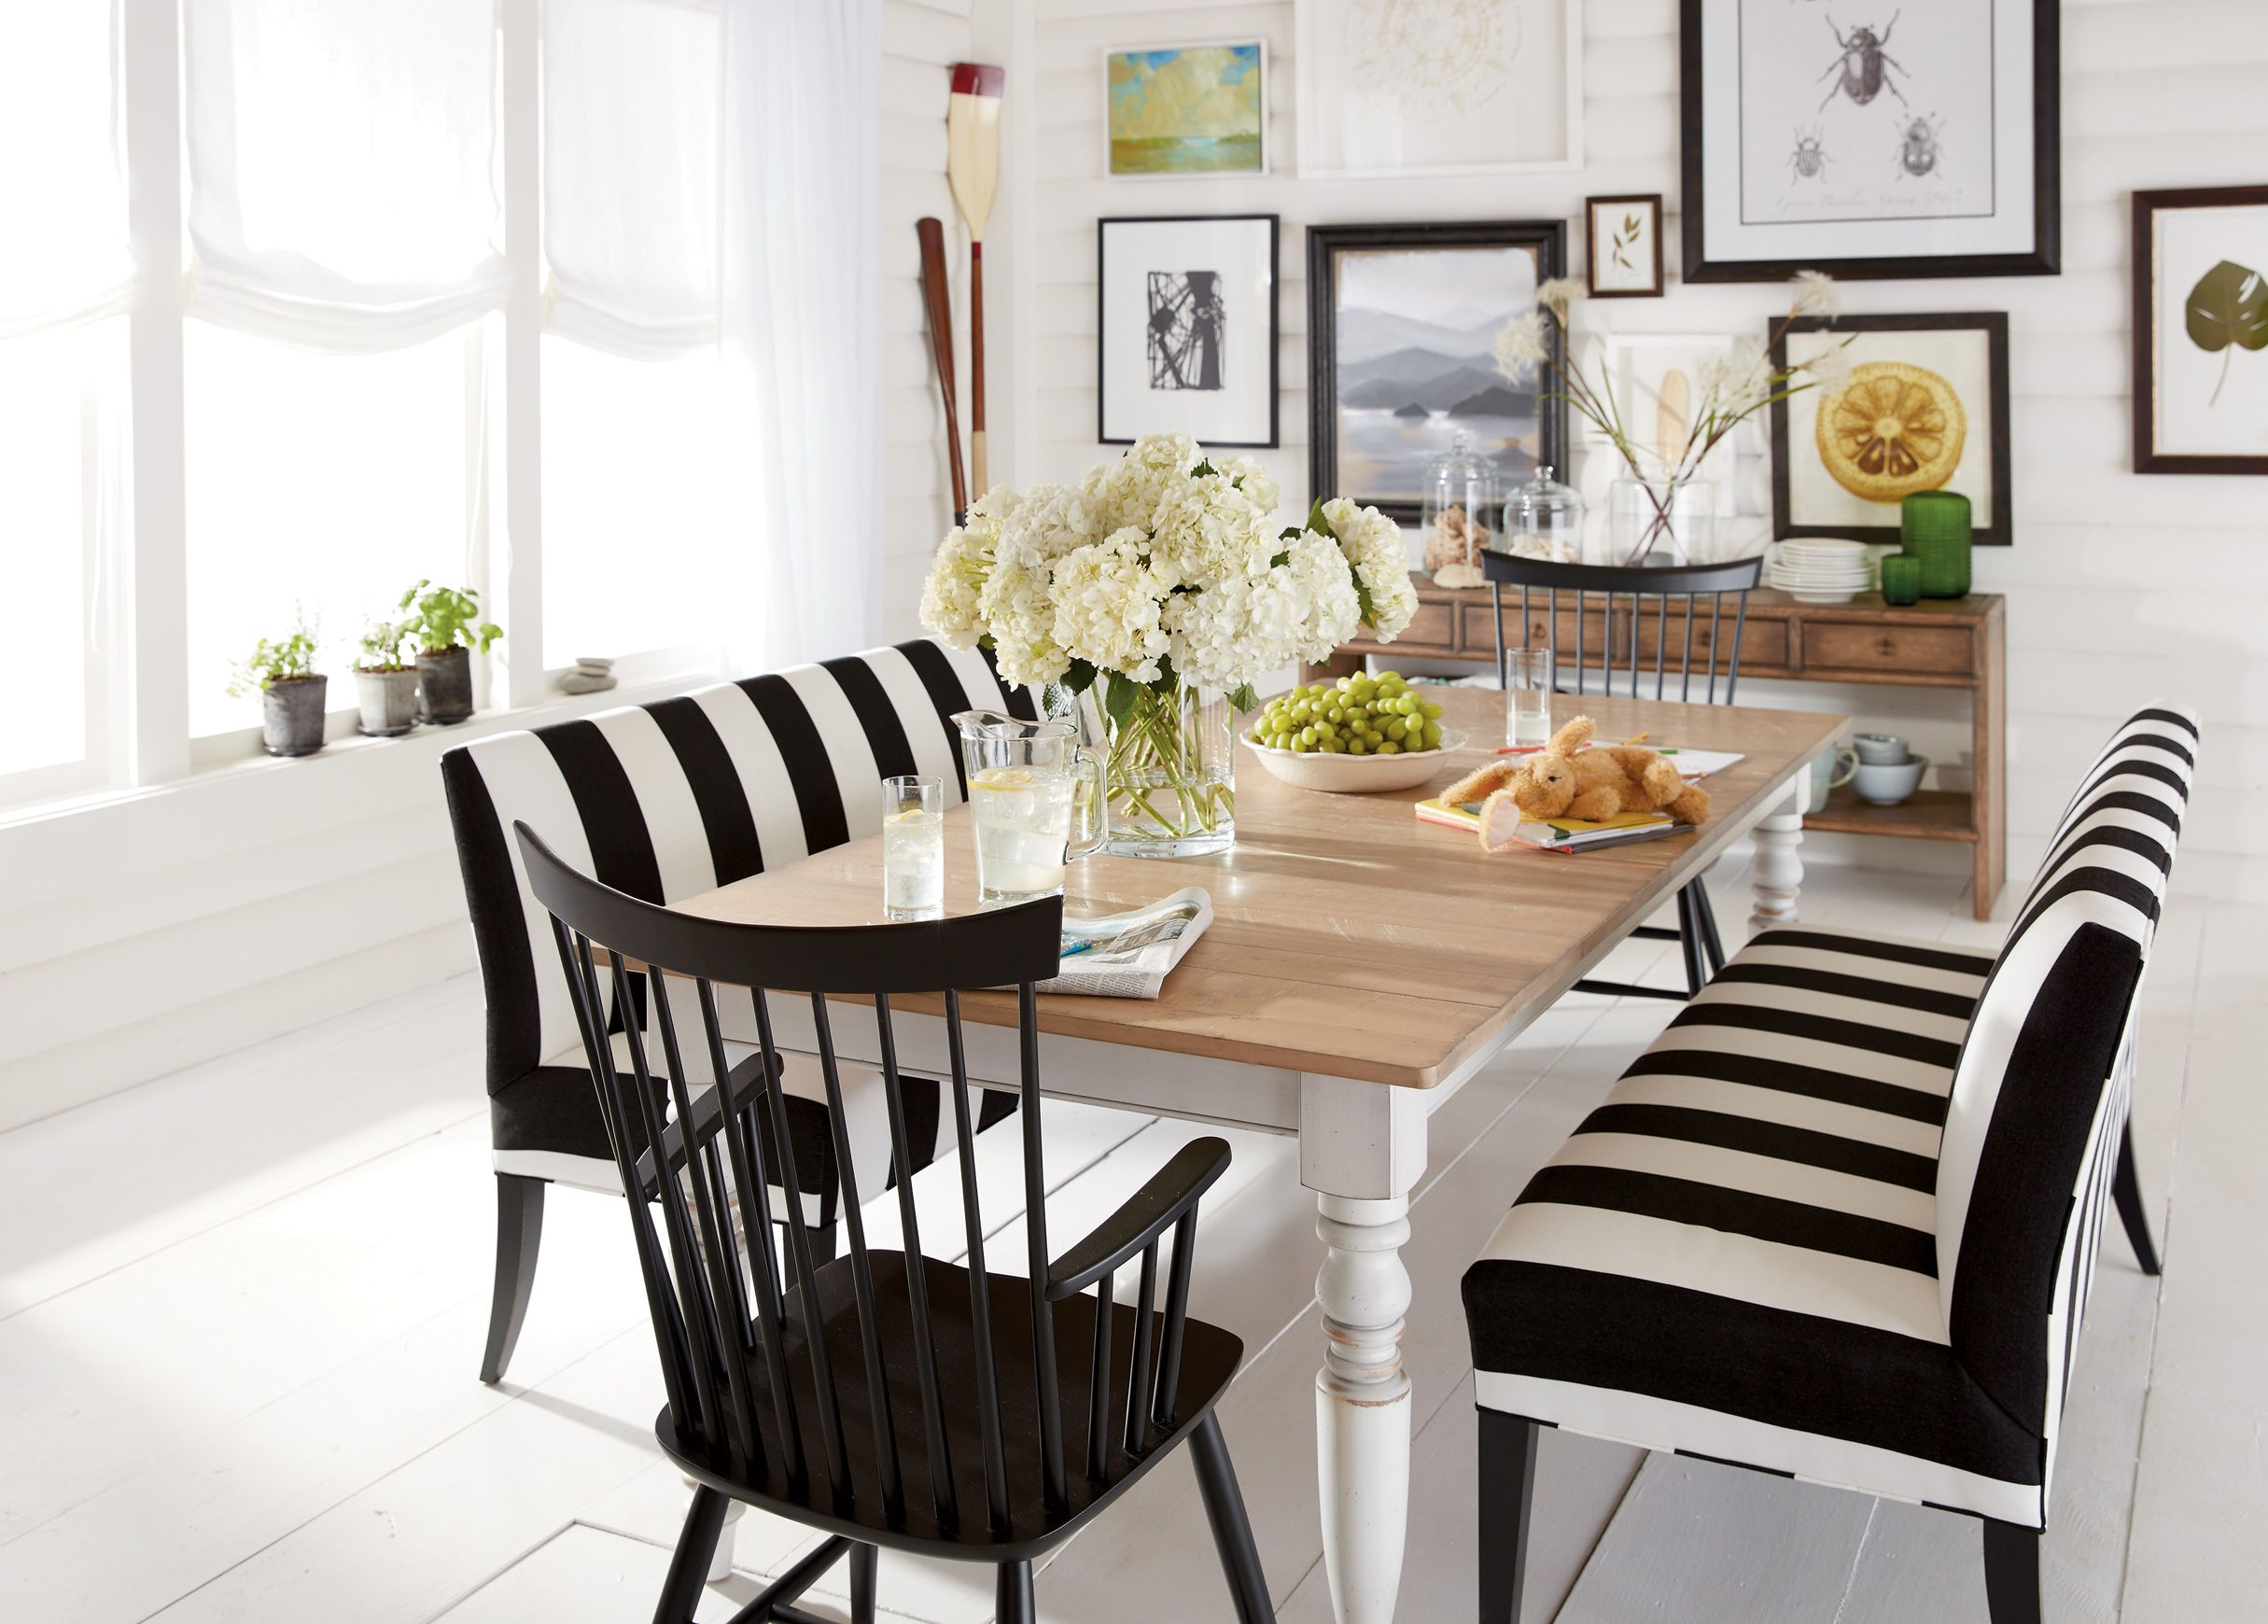 Kitchen table benches  Bench Warmer Dining Room  Ethan Allen  Dream House  Pinterest